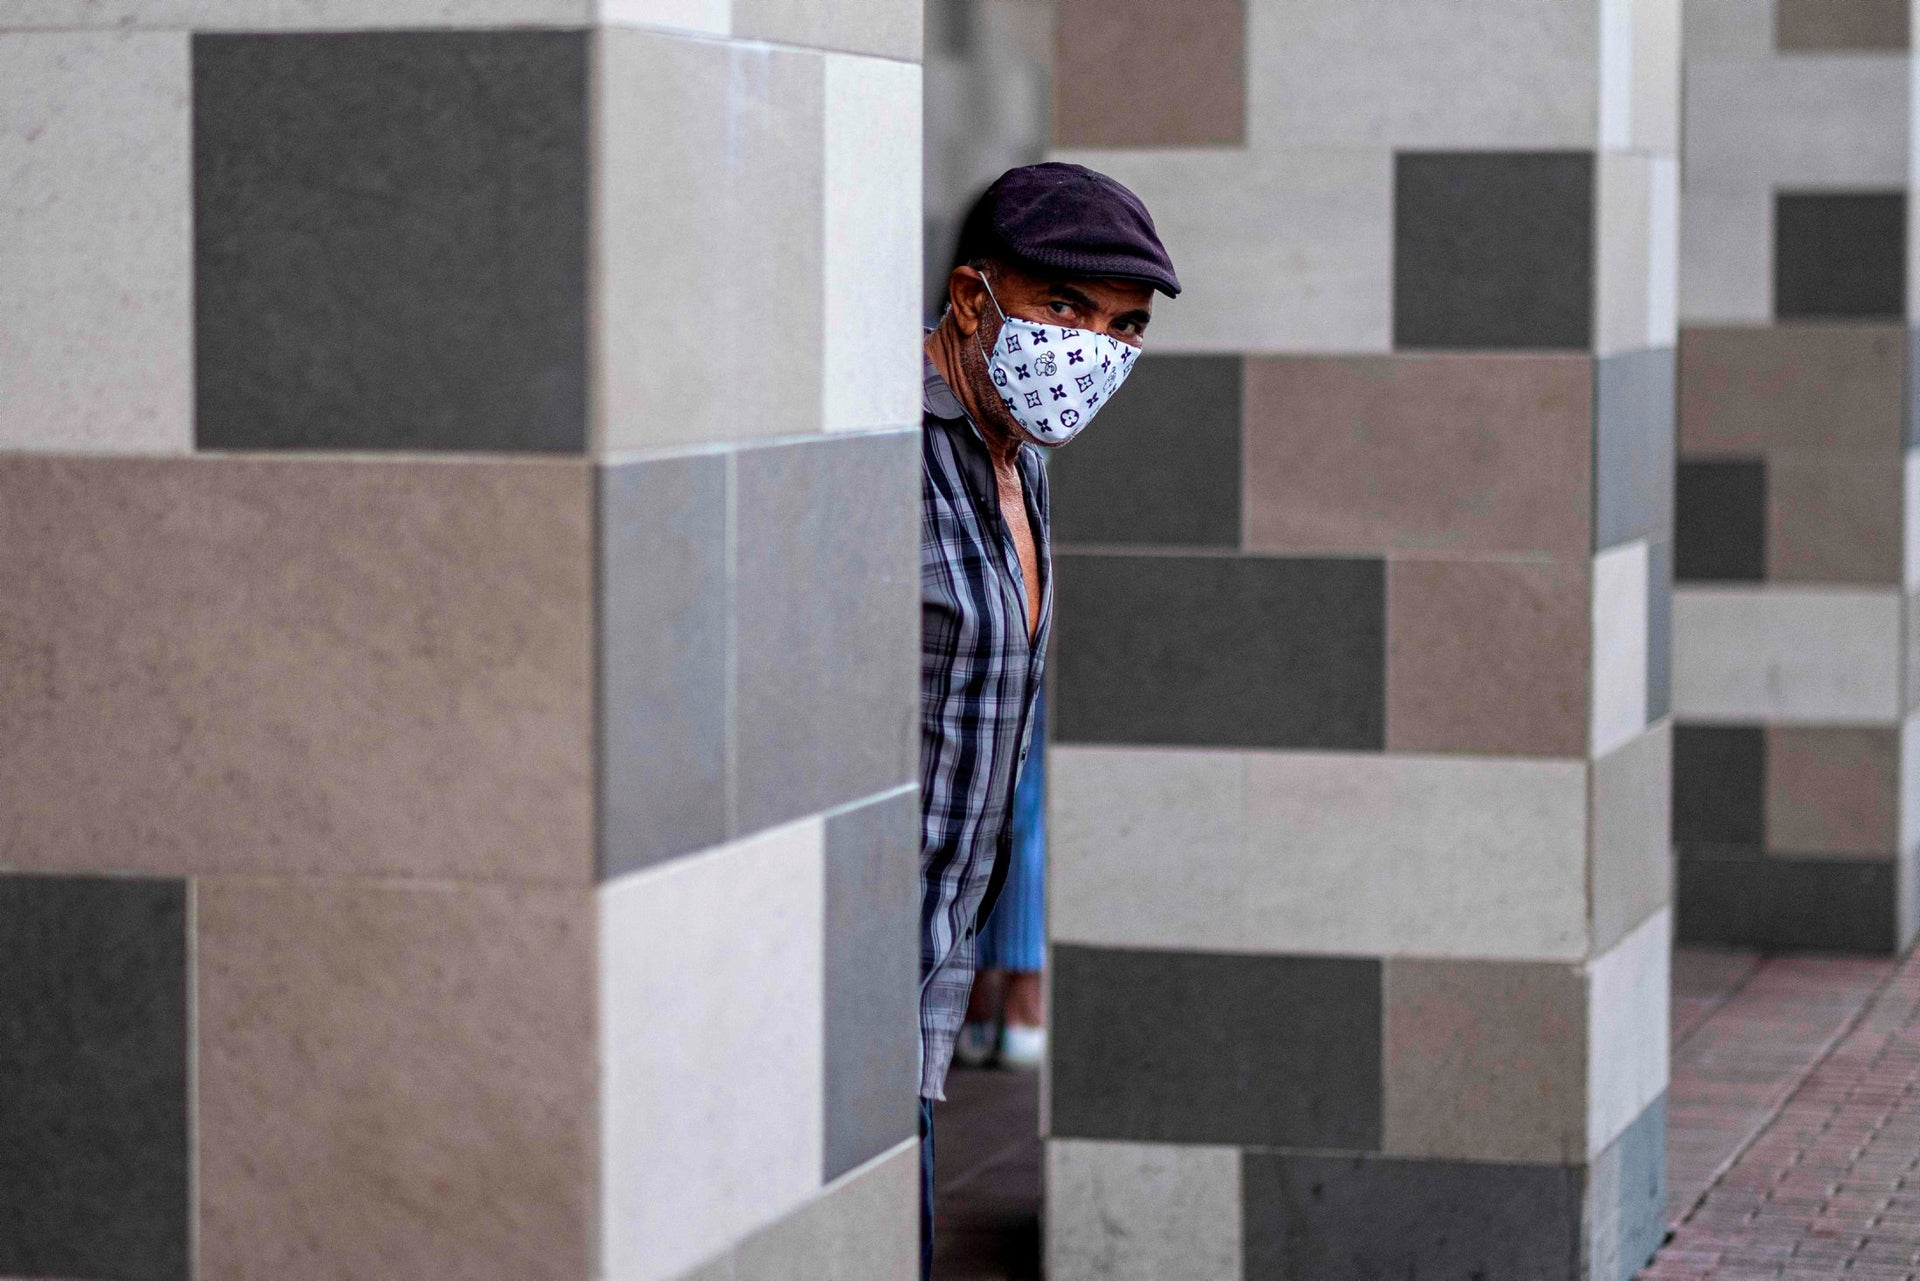 A man wears a face masks to protect against the coronavirus as he queues at a supermarket in San Juan, Puerto Rico on April 7, 2020.